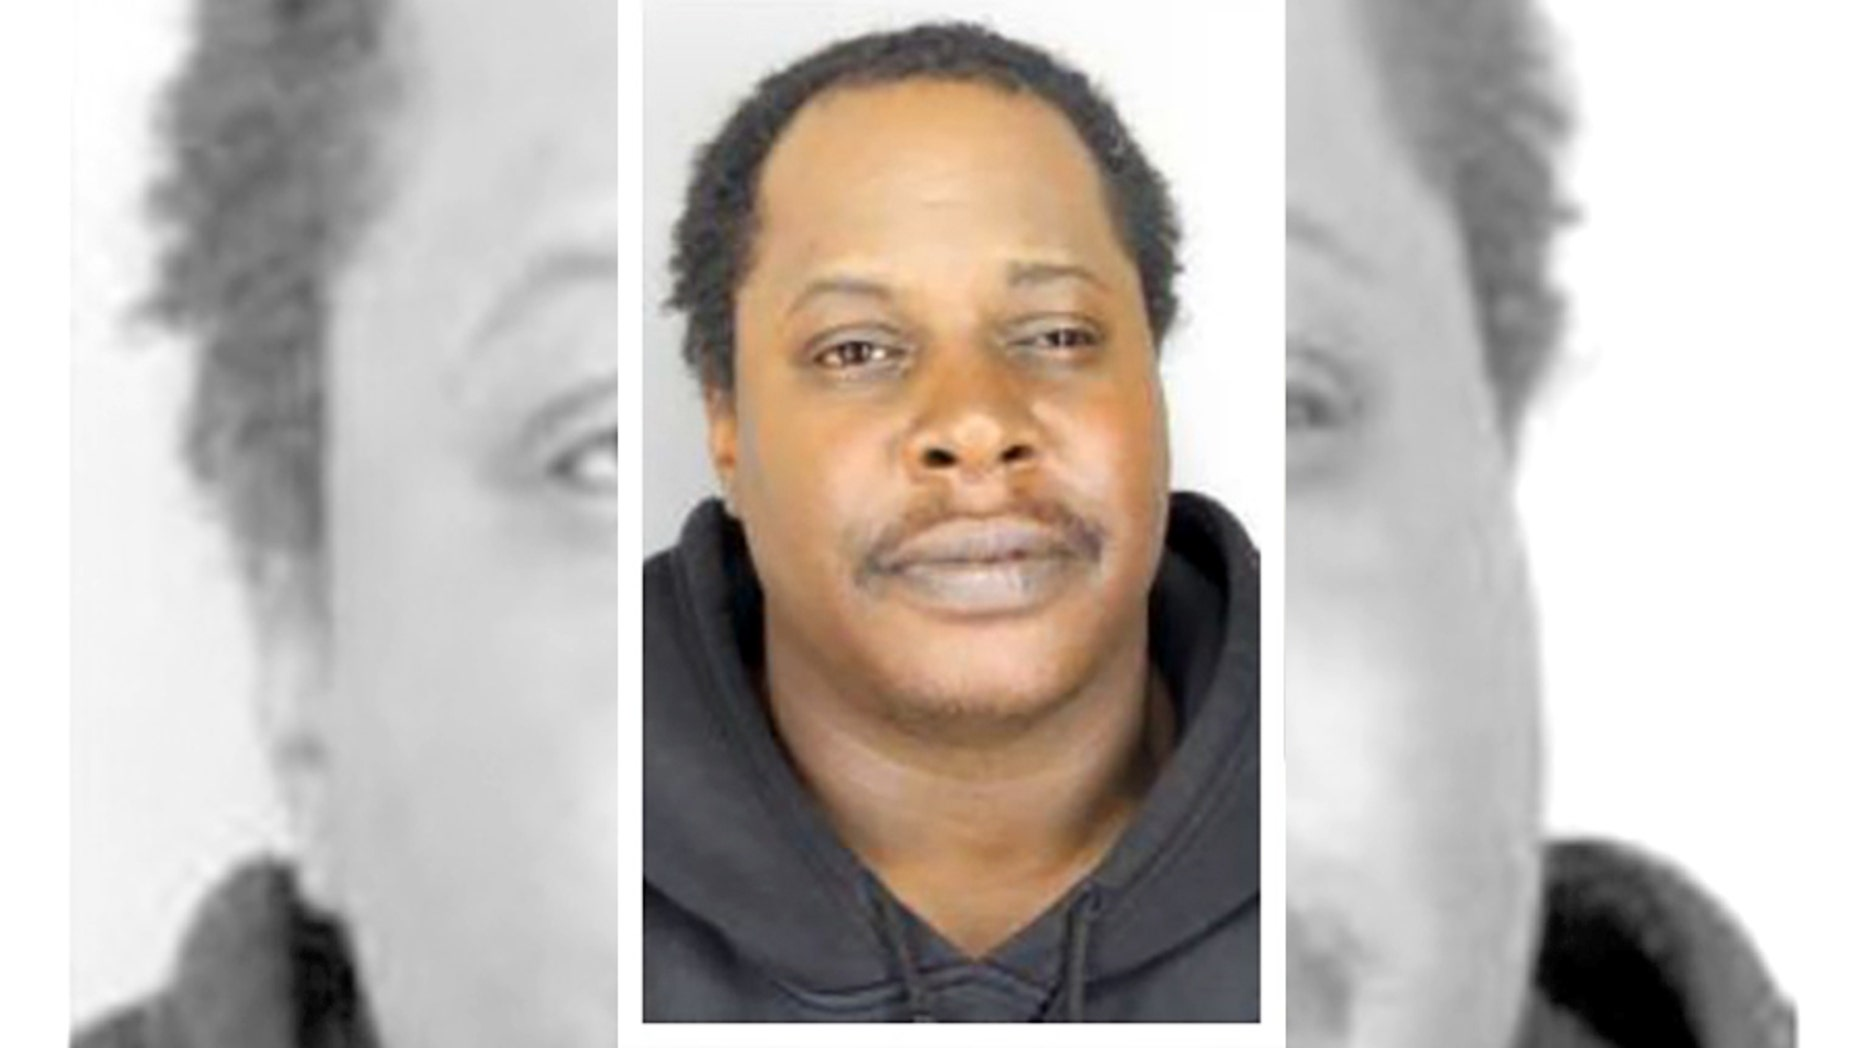 Derrick Harper, 39, of Pittsburgh was sentenced to 287 years to life in prison after he was convicted of conspiracy and human trafficking.